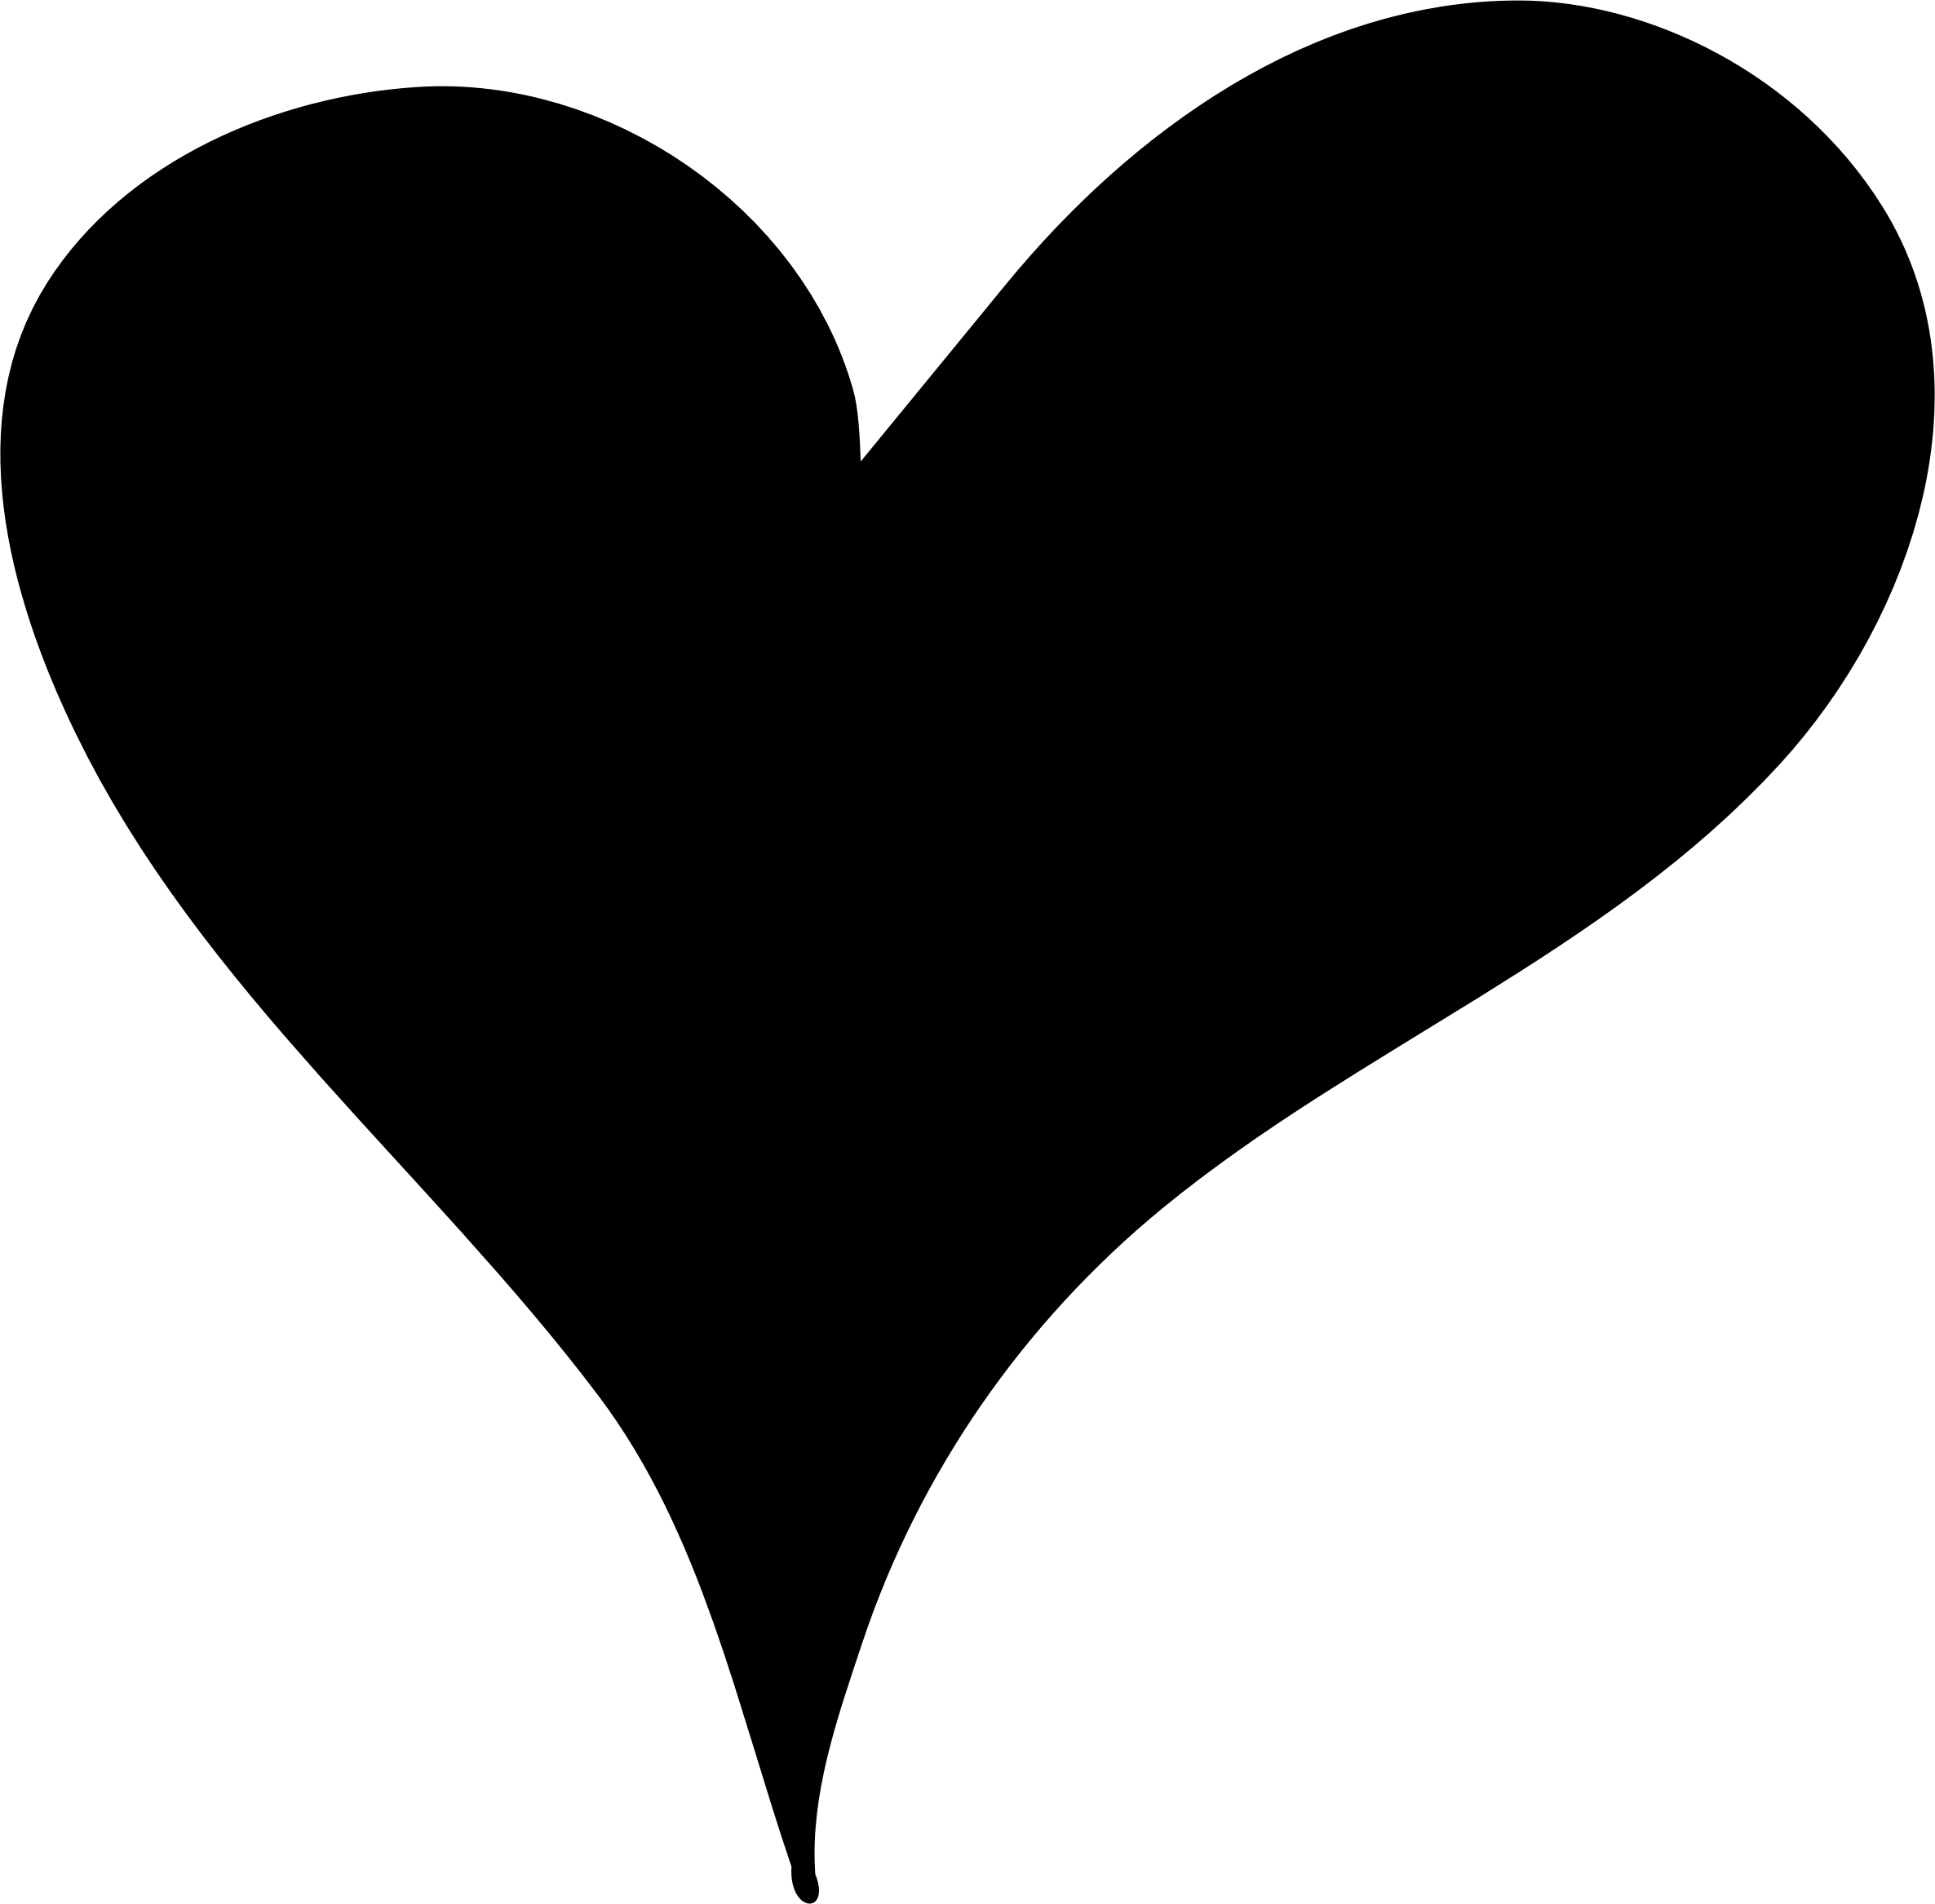 Clipart Stock Outline Medium Image Png - Hearts Outline ...